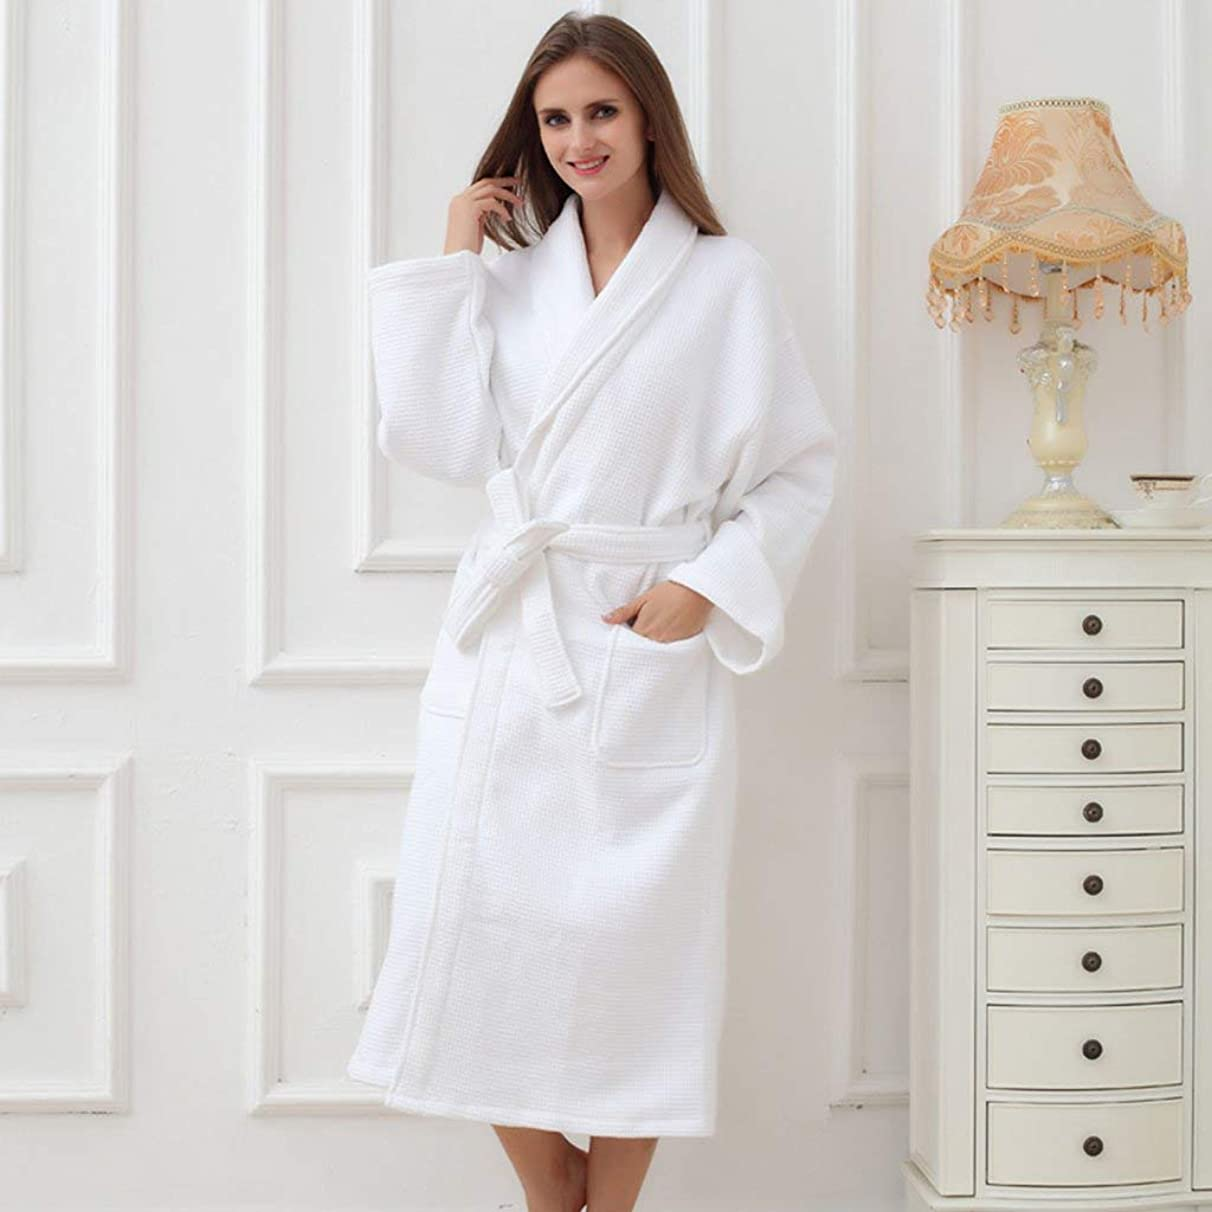 JZX Comfortable Home Pajamas Shop Cotton with Pockets Bathrobe- Winter Cotton Thickening Bathrobe Hotel Home Couple Nightgown Men's and Women's Home Clothes